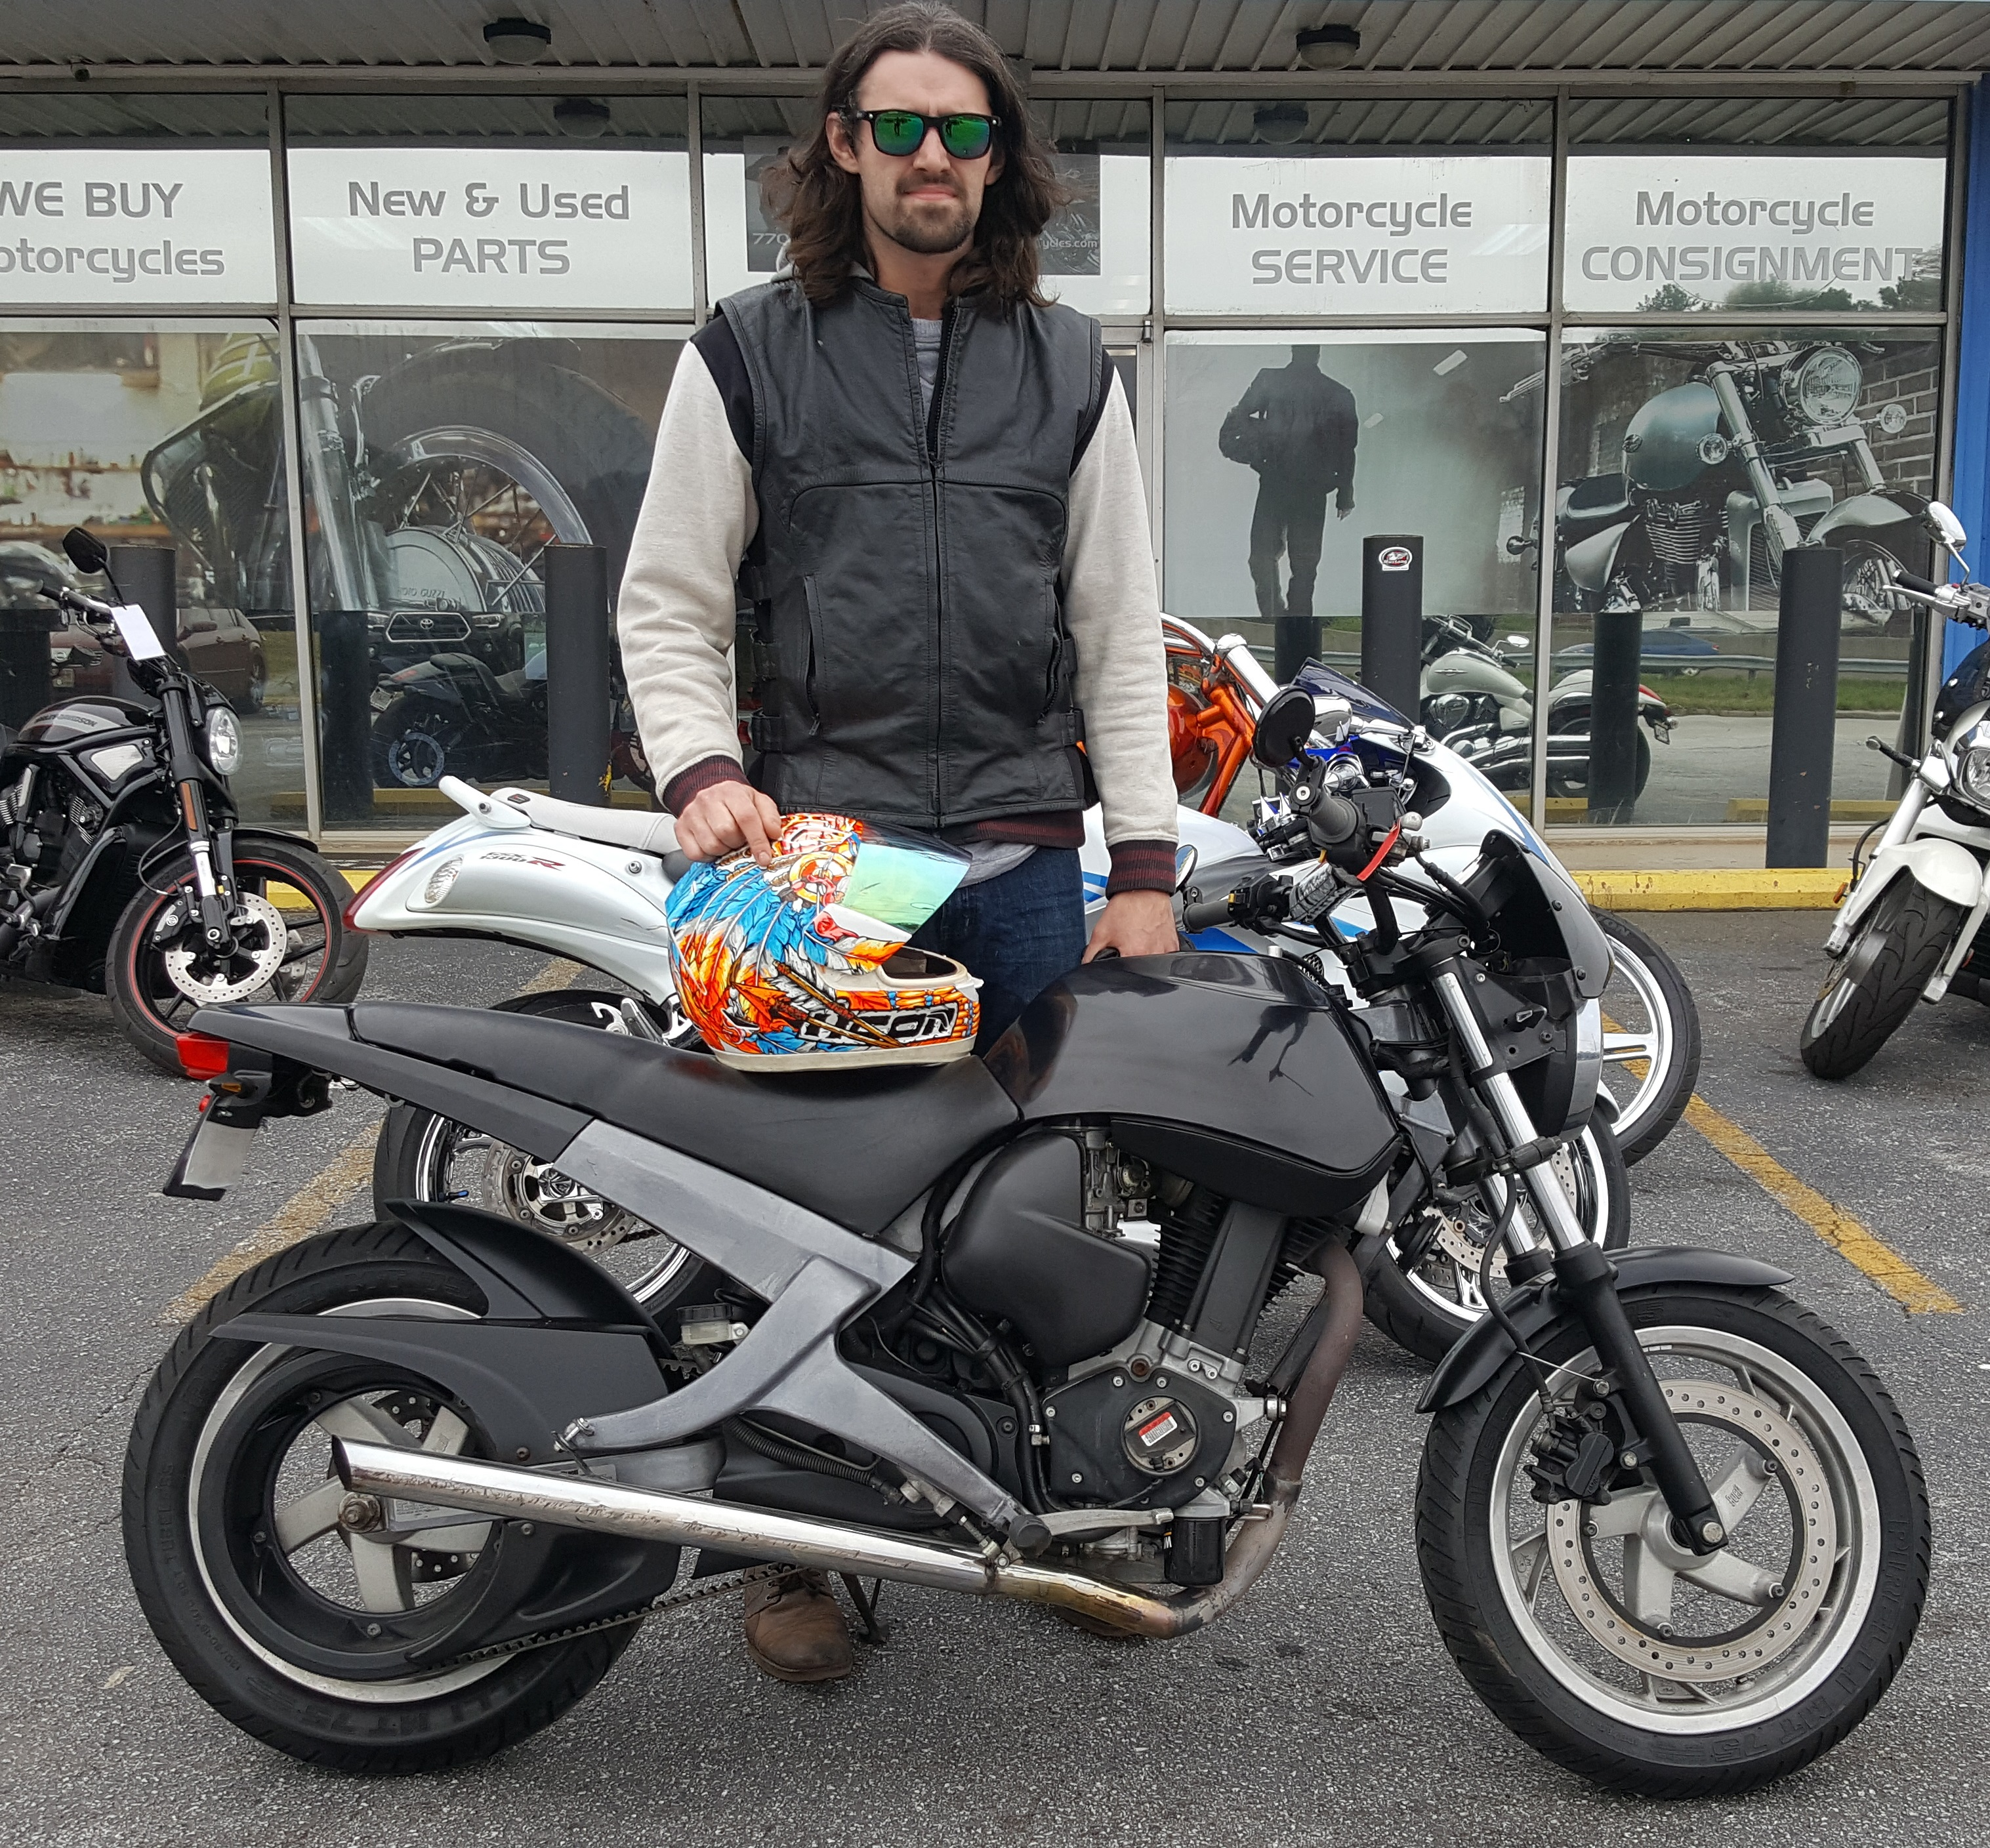 Ryan J. with his 2001 Buell Blast